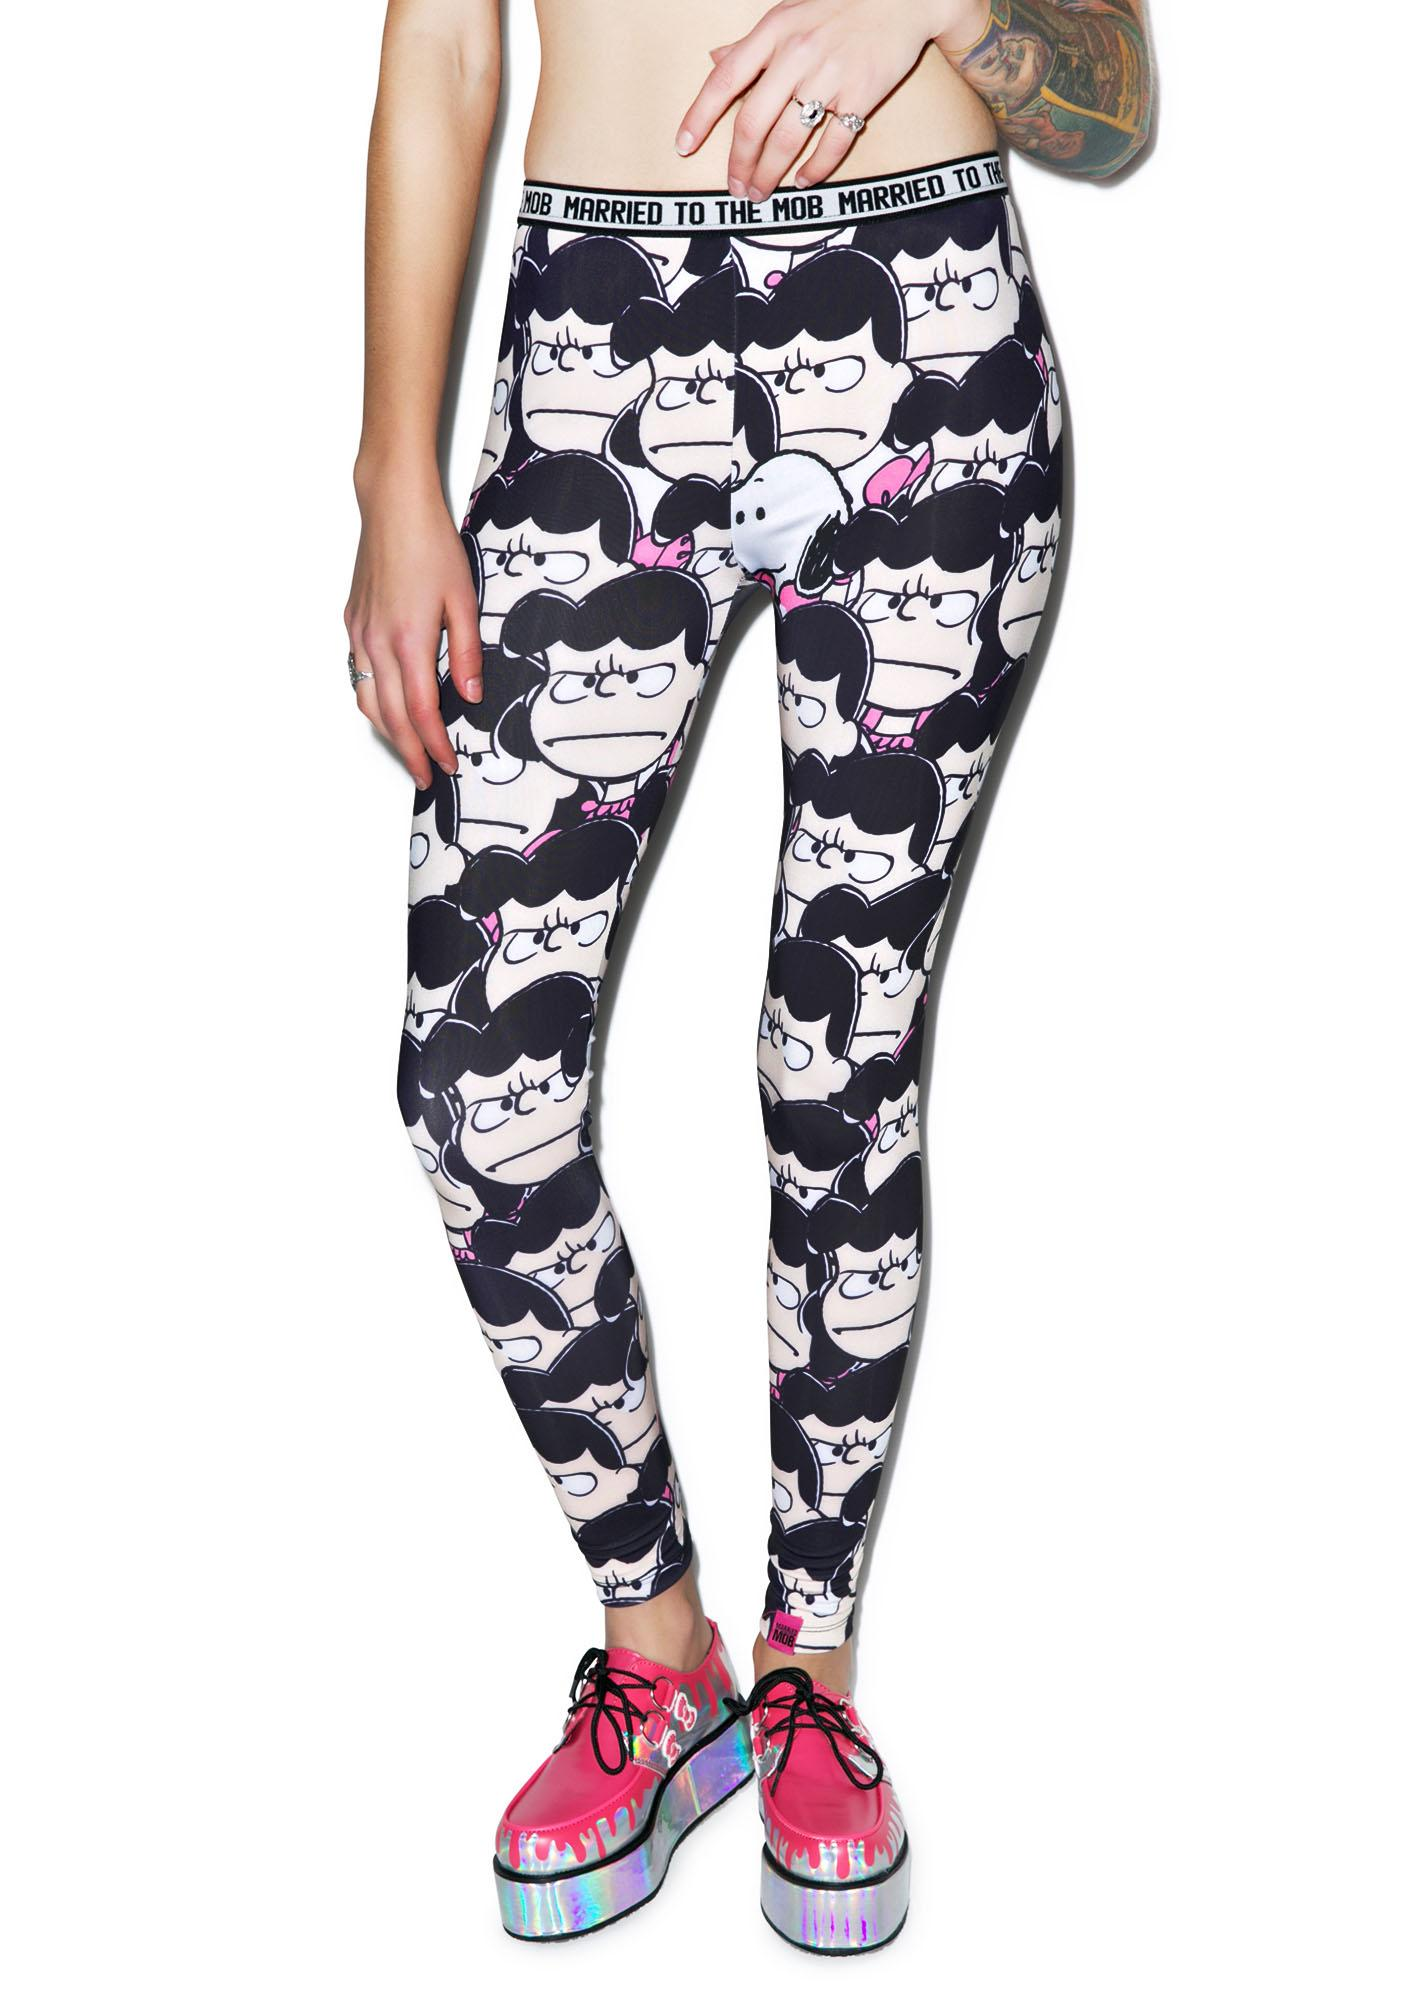 Married to the Mob Lucy Printed Stretch Leggings